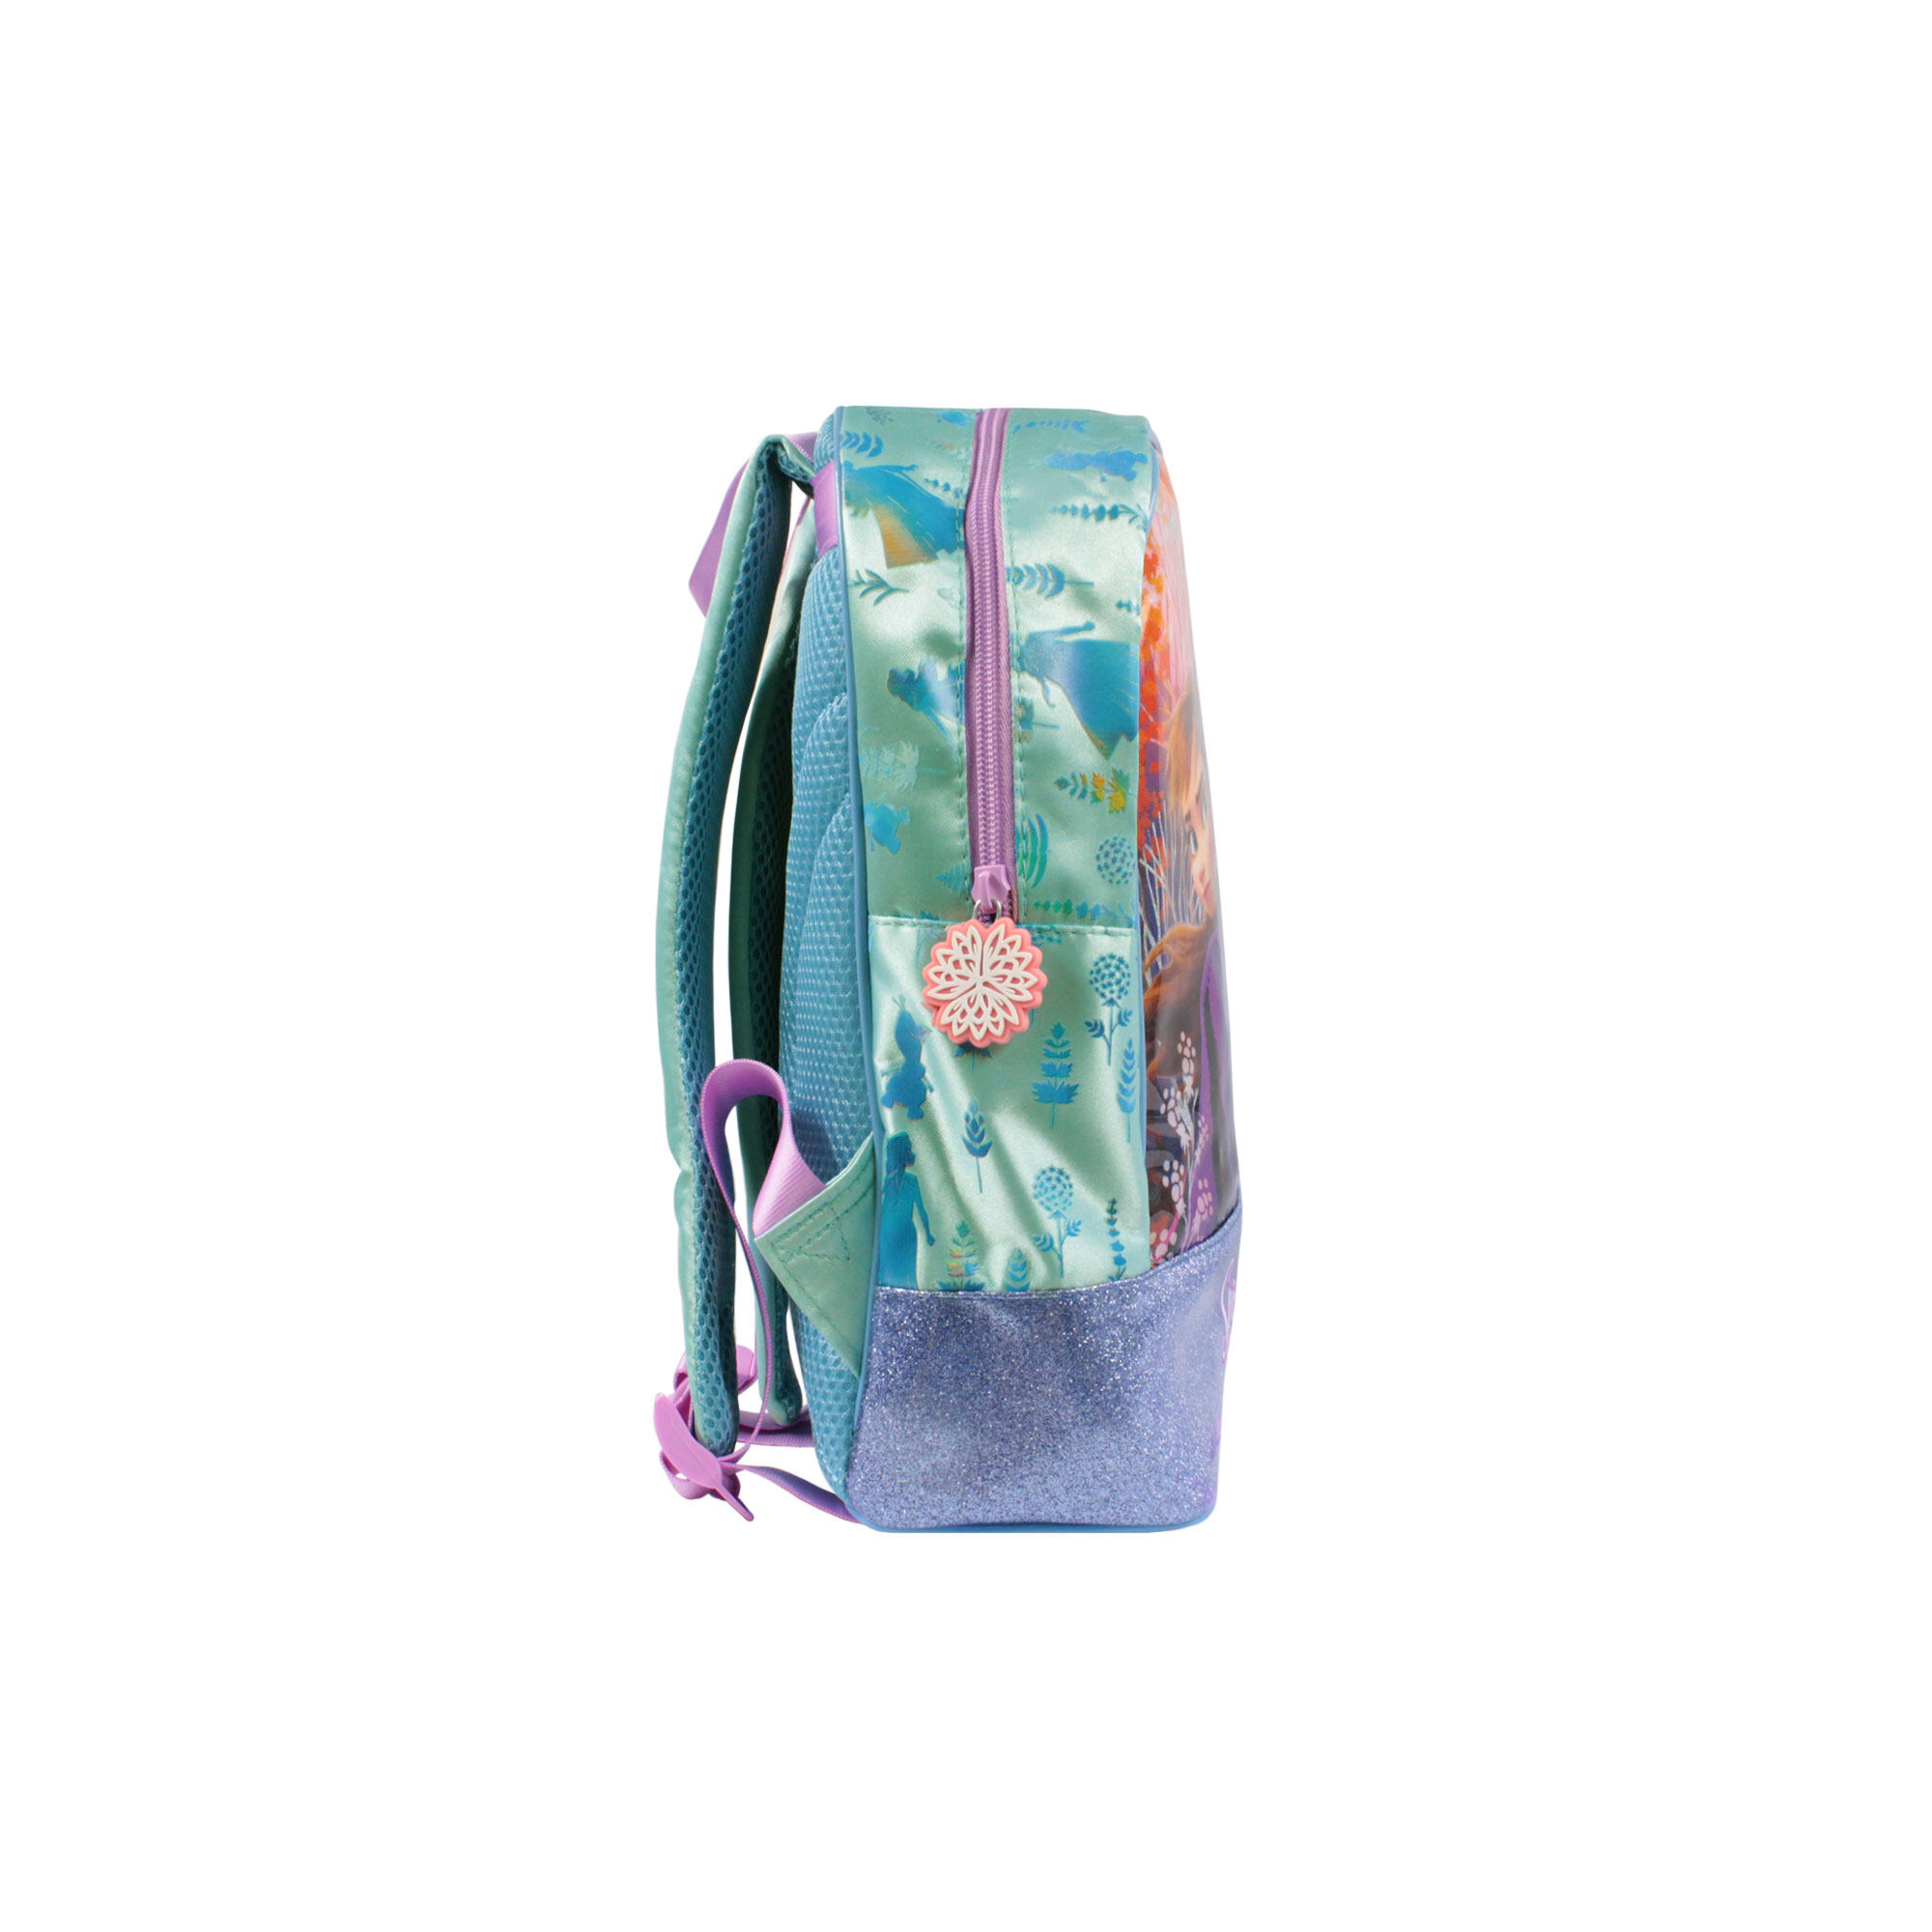 """[9.9] Disney Princess Frozen 2 Princess Elsa & Anna Nature Is Magical Girls 12 Inch Nylon School Backpack (Purple & Turqoise)"""